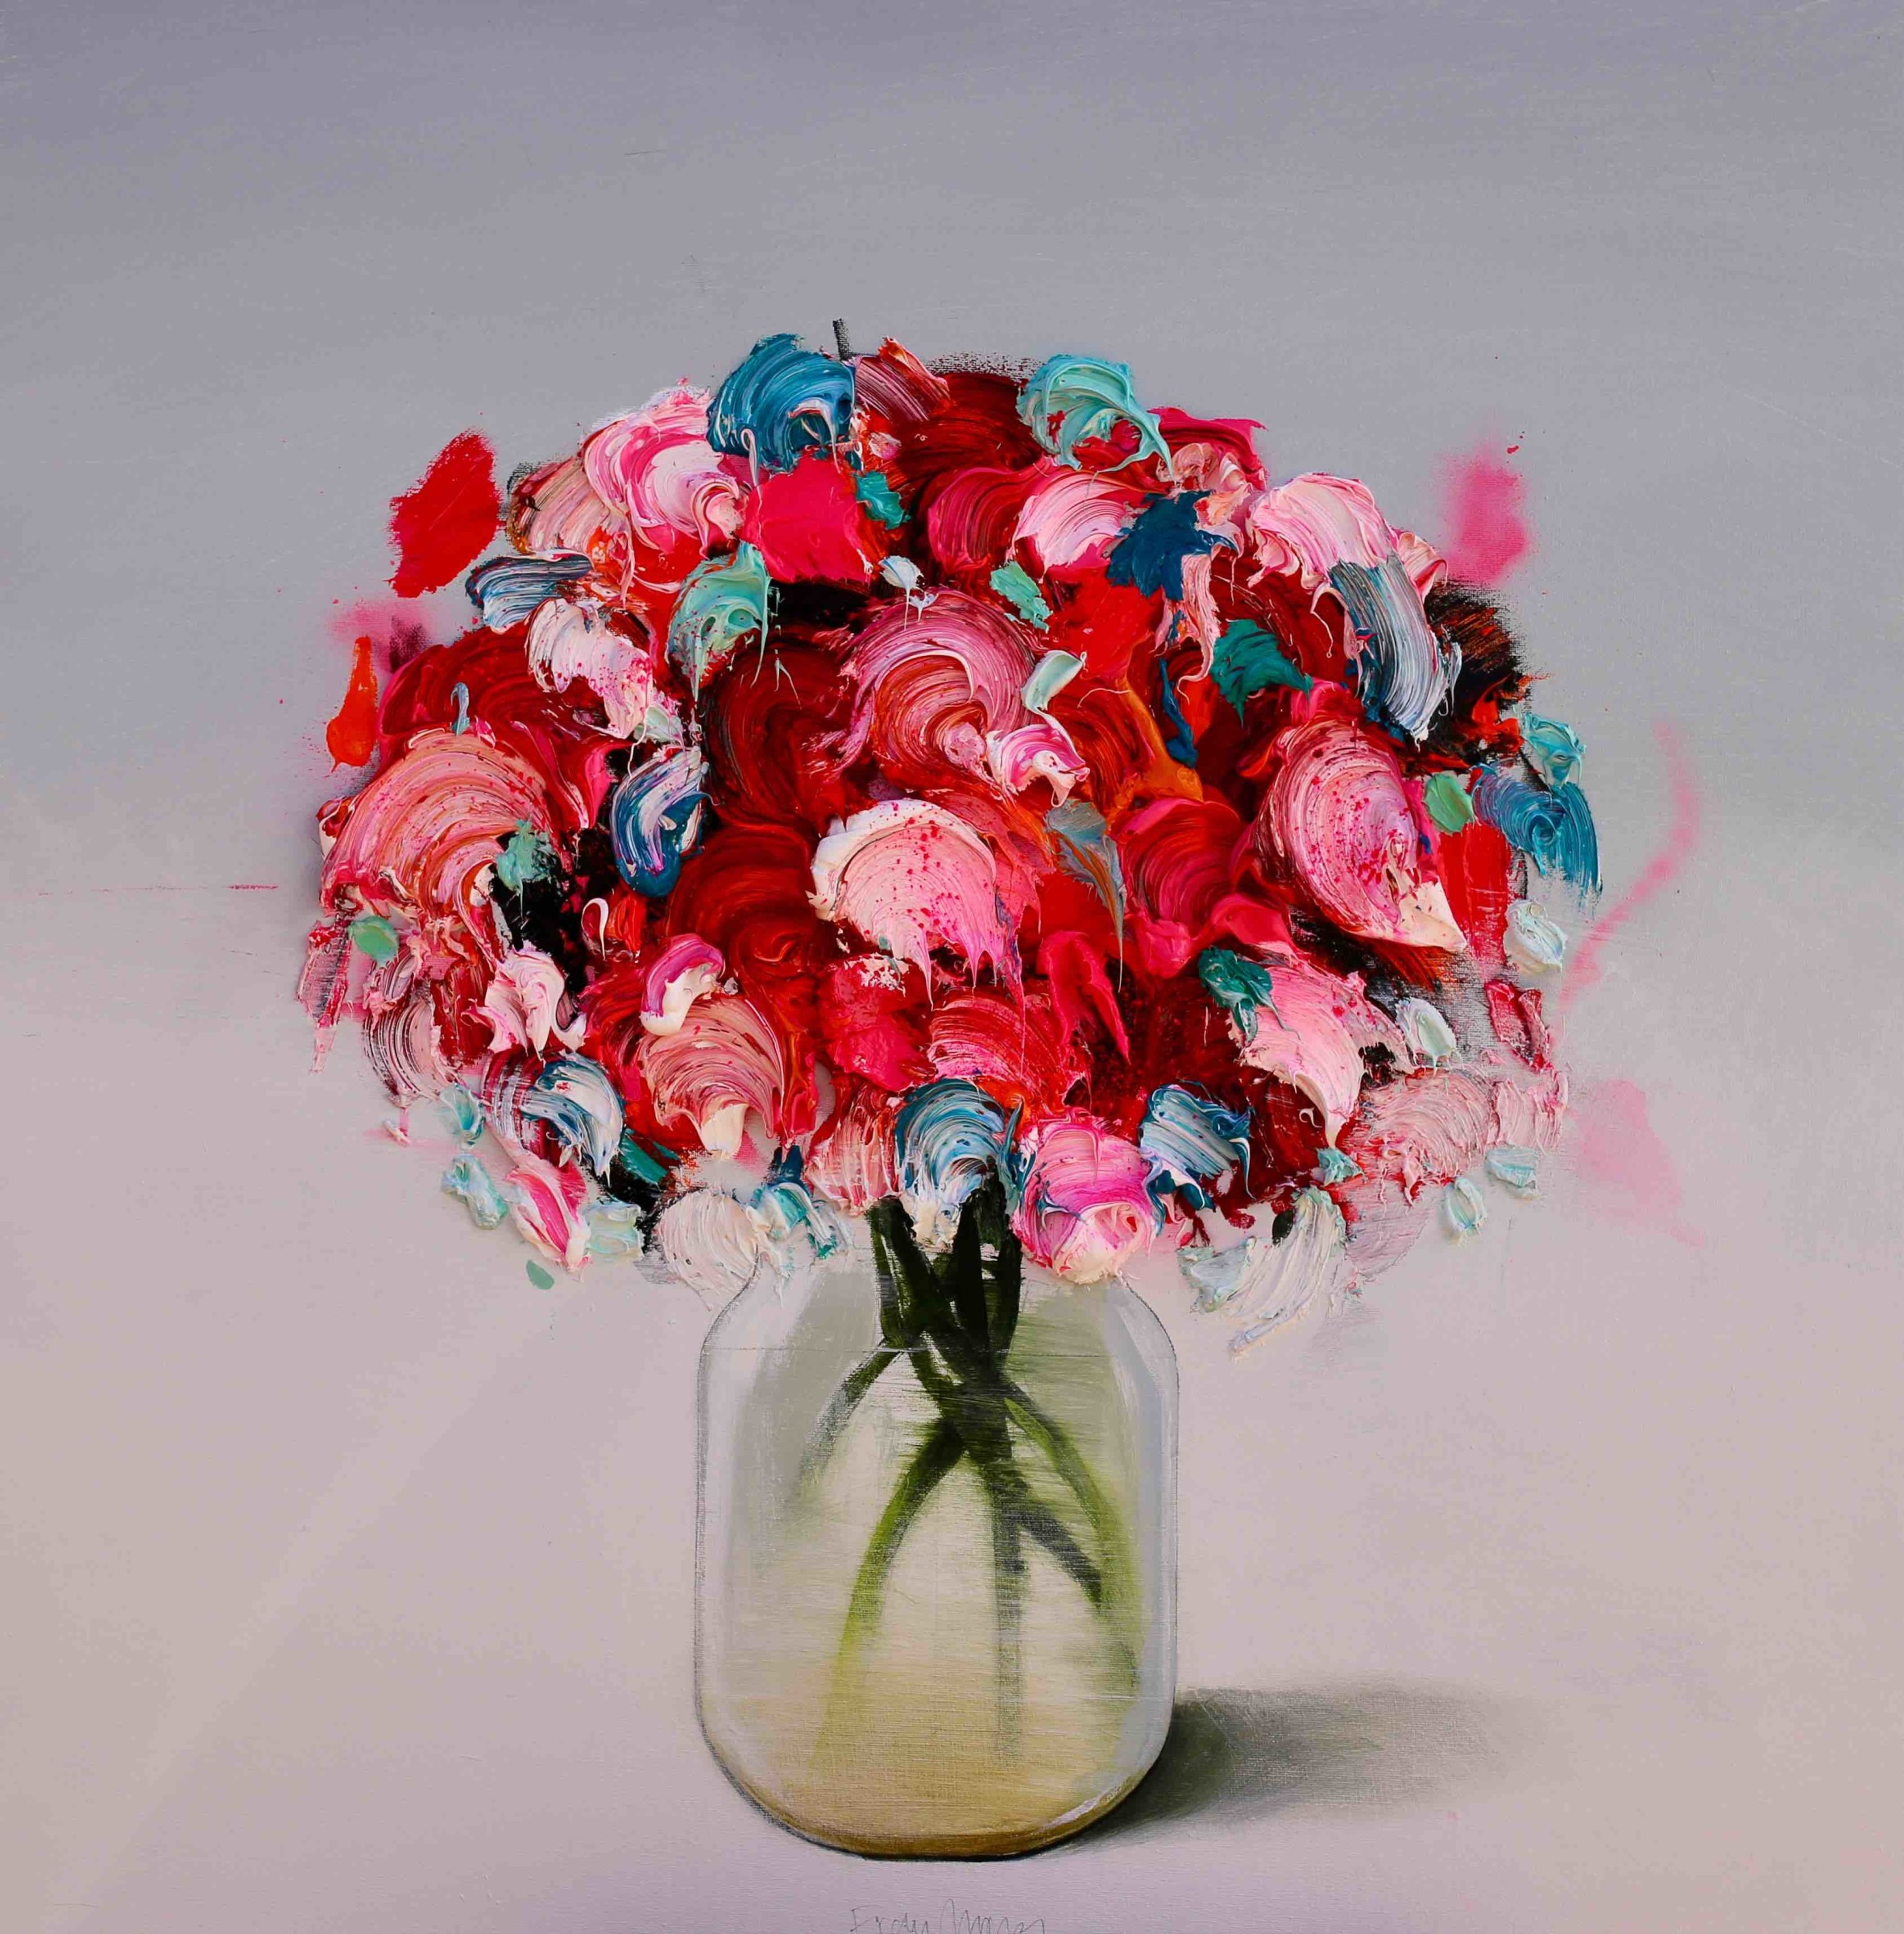 <span class=&#34;link fancybox-details-link&#34;><a href=&#34;/artists/195-fran-mora/works/2781-fran-mora-flores-rojos-red-flowers/&#34;>View Detail Page</a></span><div class=&#34;artist&#34;><strong>Fran Mora</strong></div> <div class=&#34;title&#34;><em>Flores Rojos (Red Flowers) </em></div> <div class=&#34;medium&#34;>Oil on Canvas (framed)</div> <div class=&#34;dimensions&#34;>80 x 80 cm</div><div class=&#34;copyright_line&#34;>Copyright The Artist</div>